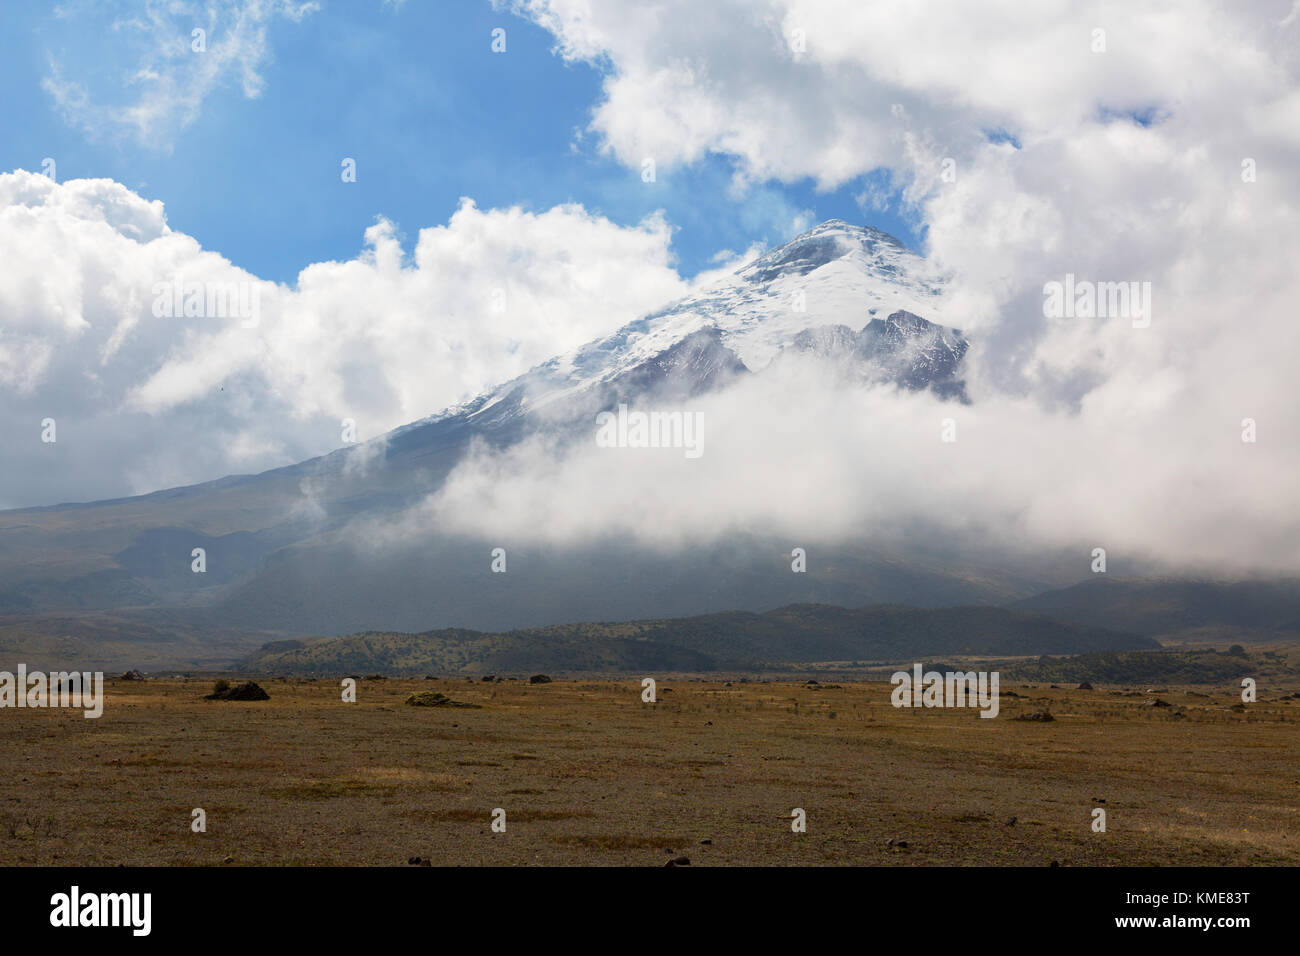 Mount Cotopaxi volcano, Cotopaxi National Park, Ecuador, South America - Stock Image